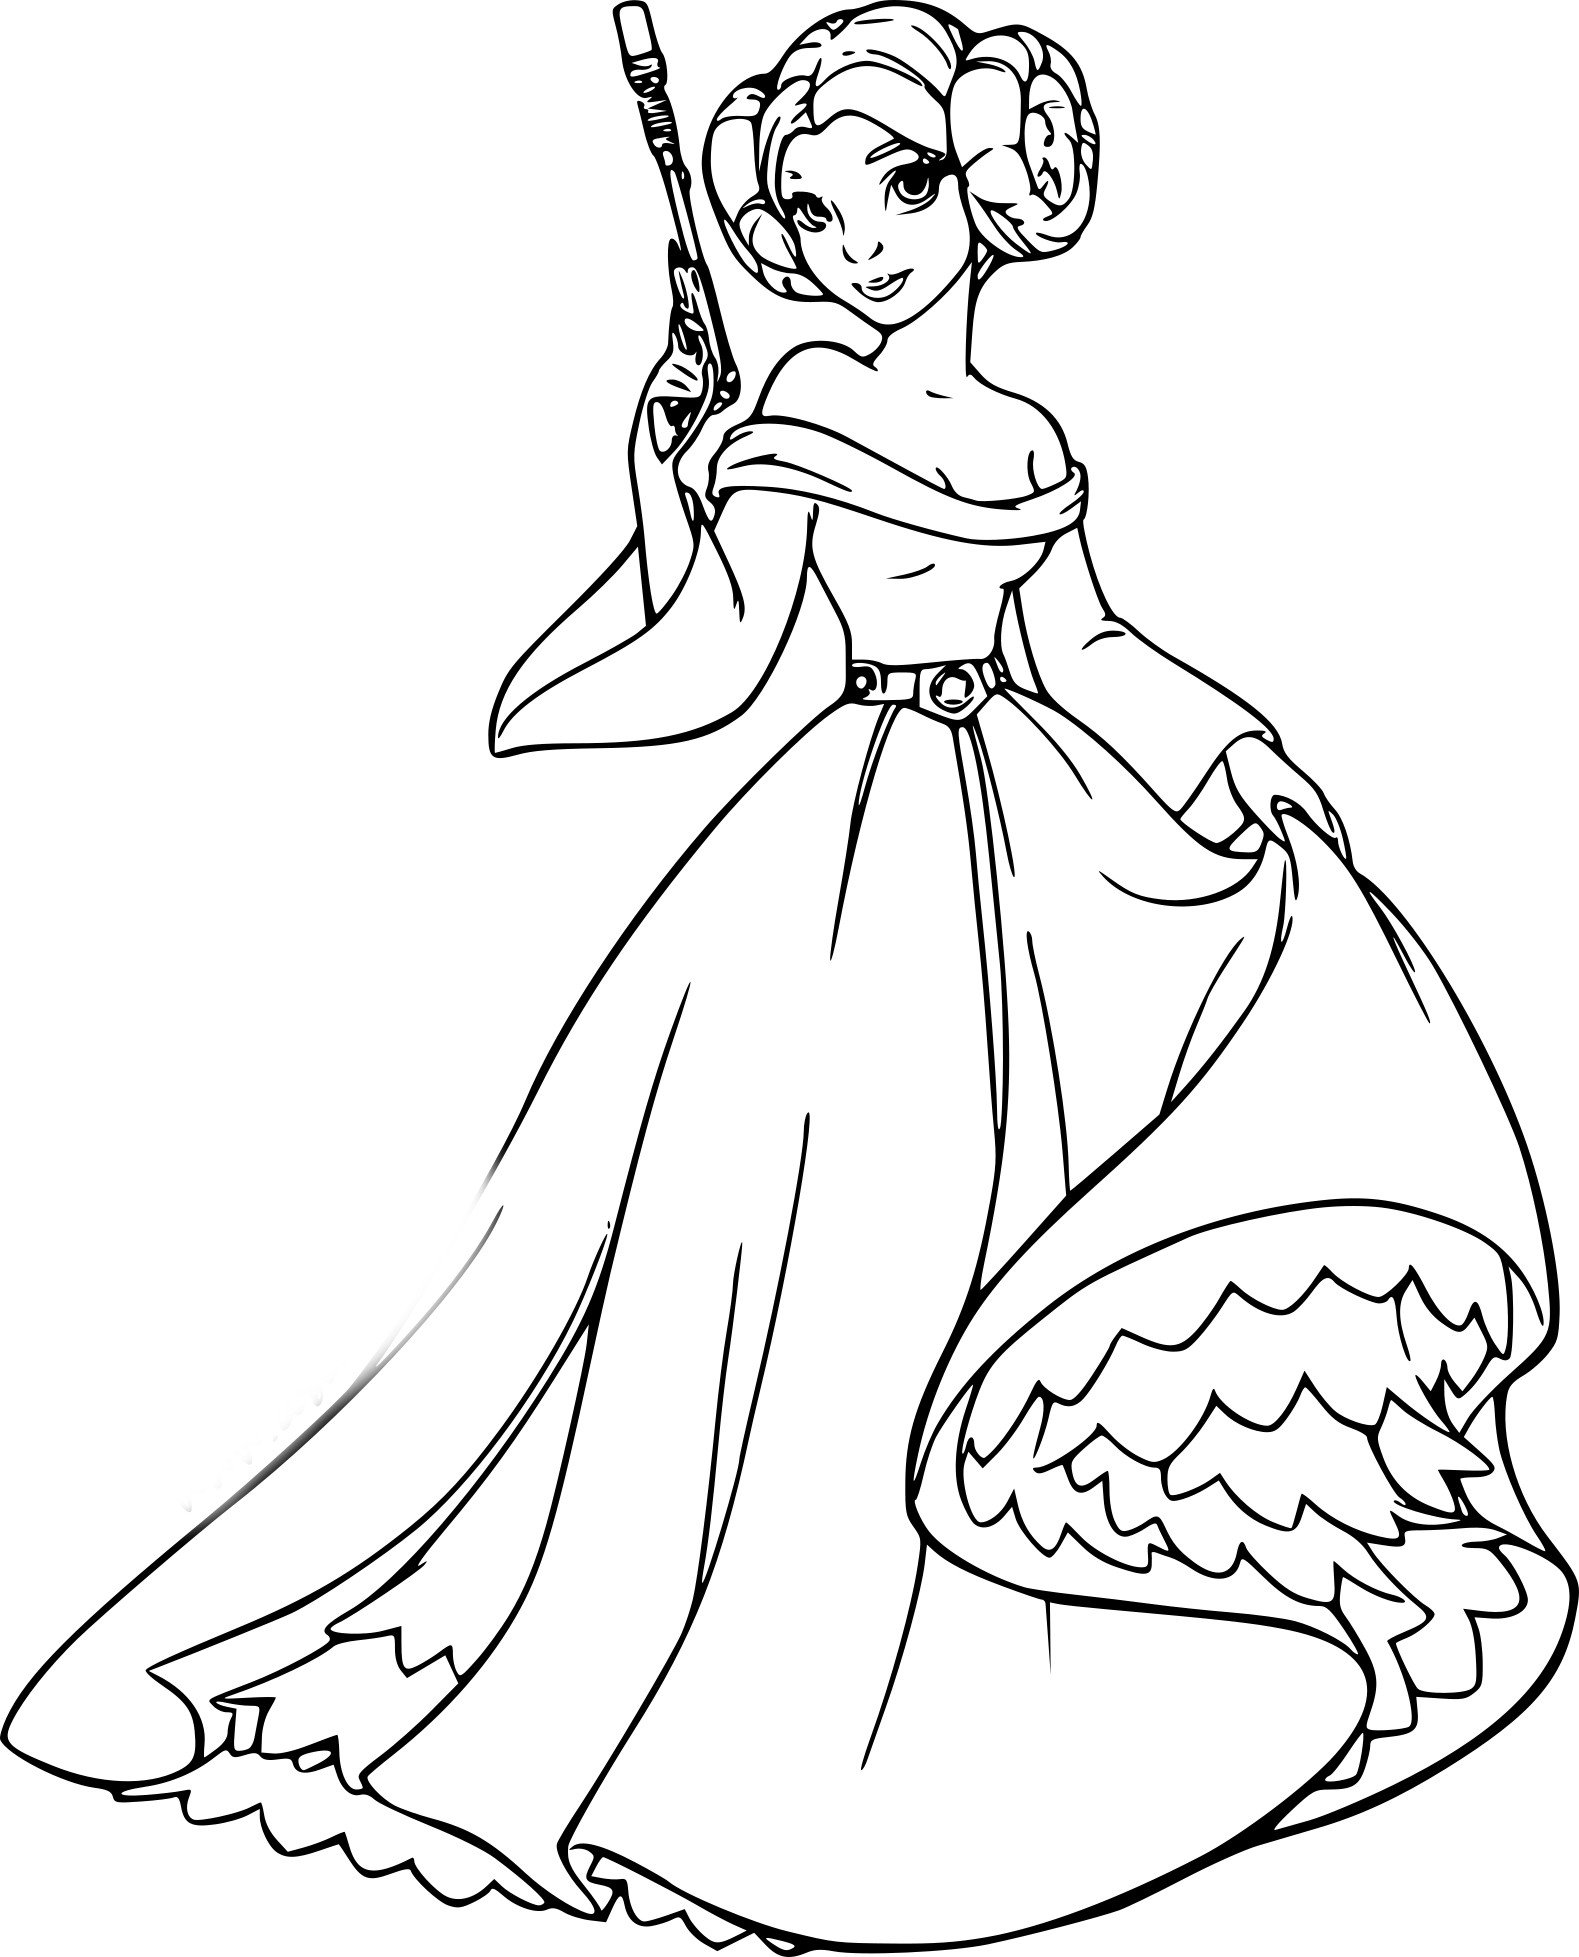 Coloriage Princesse Leia | My Blog pour Star Wars Dessin A Colorier